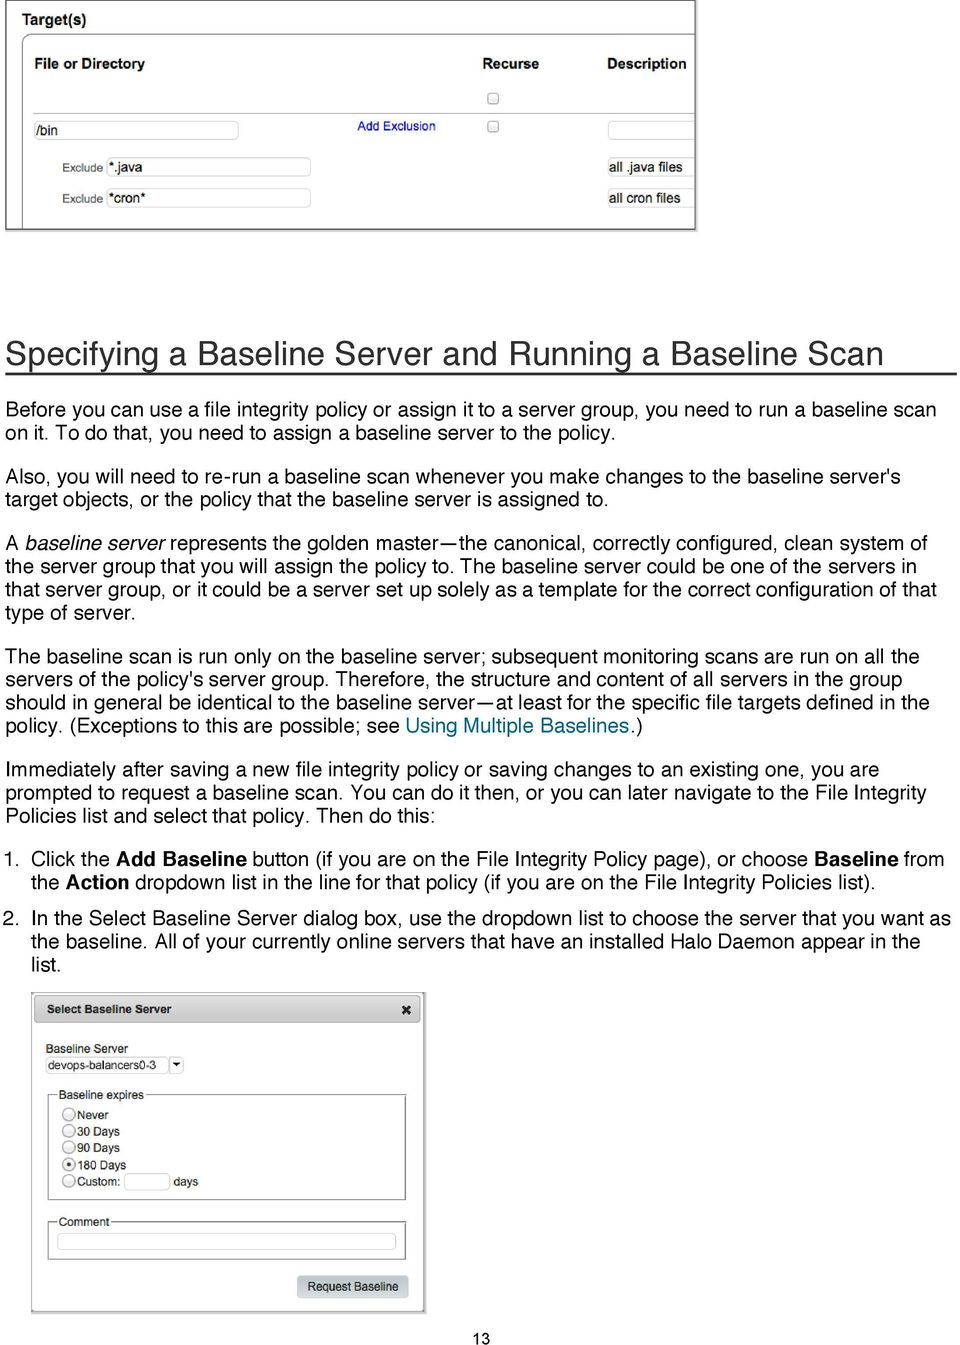 Also, you will need to re-run a baseline scan whenever you make changes to the baseline server's target objects, or the policy that the baseline server is assigned to.